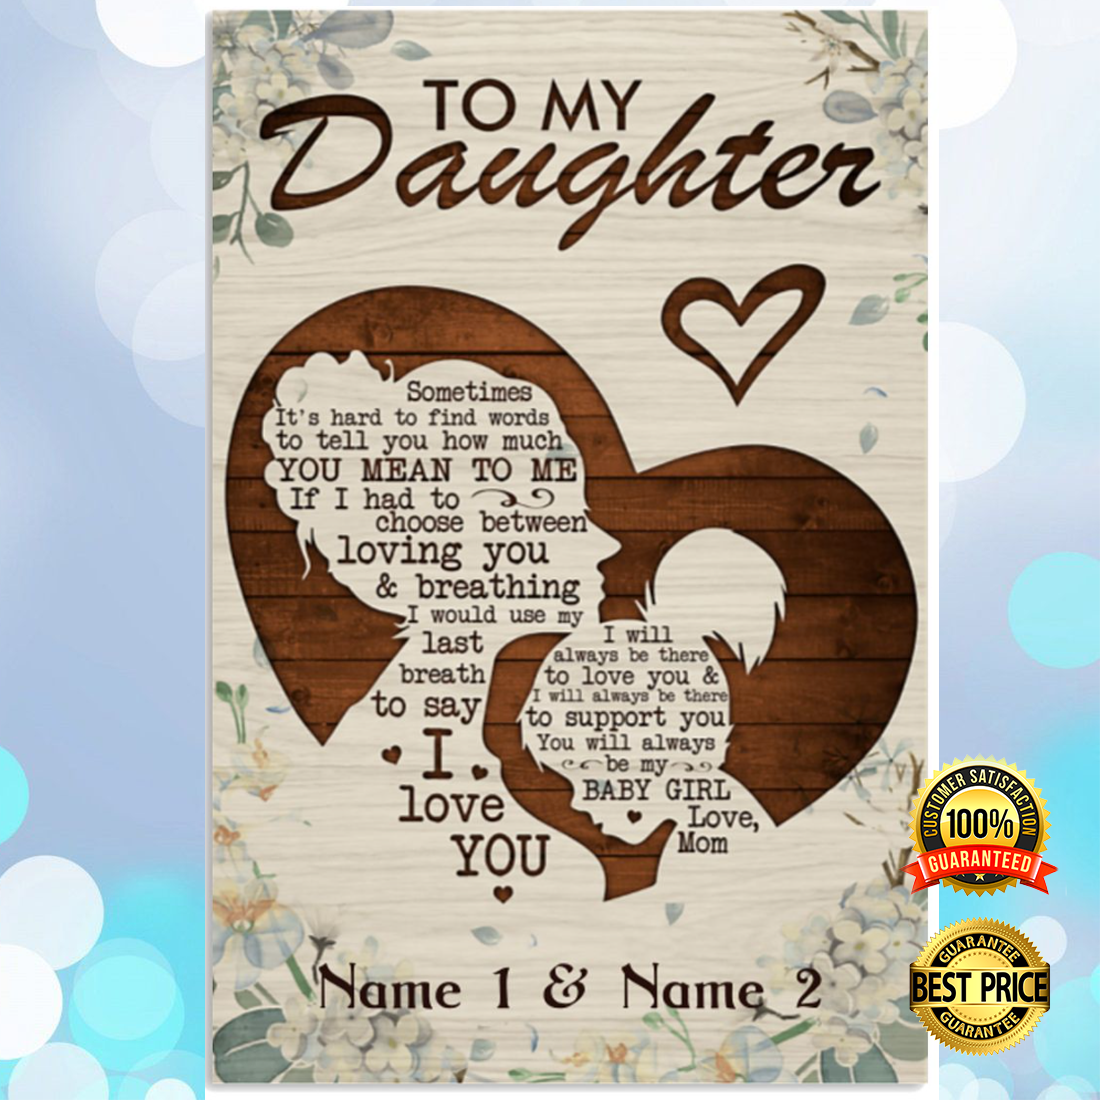 Personalized to my daughter sometimes it's hard to find words to tell you how much you mean to me poster 5